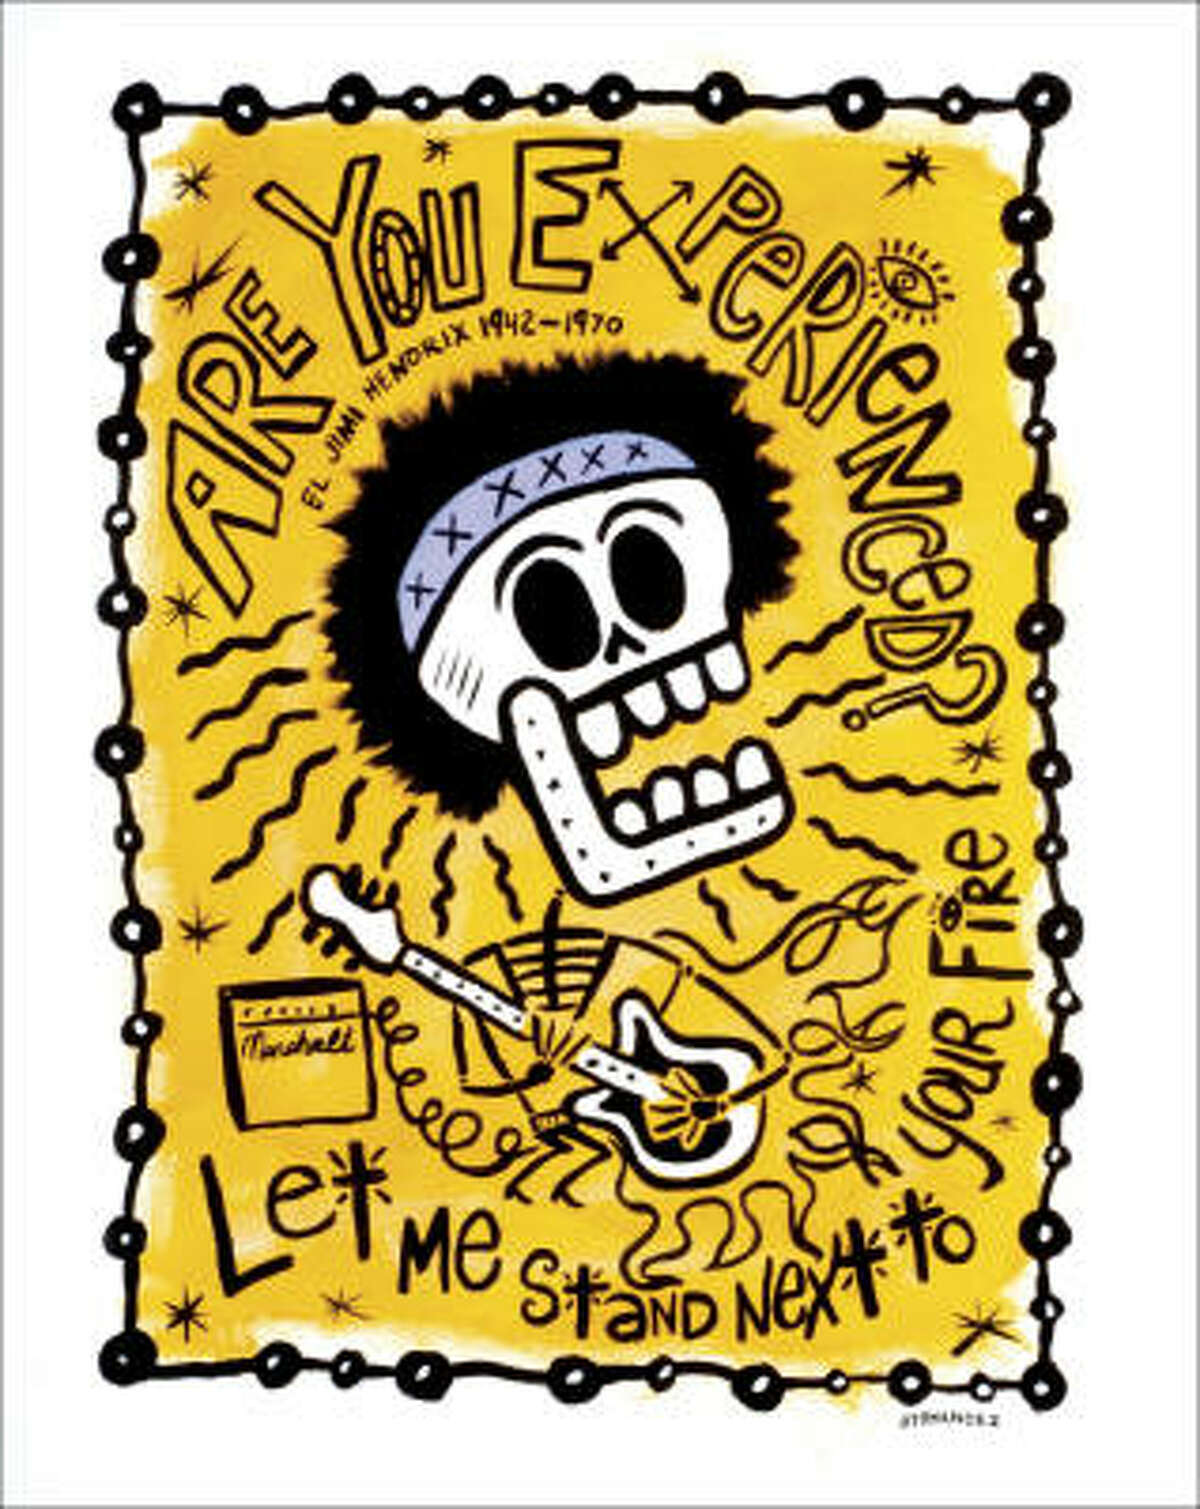 El Jimi by Carlos Hernandez is on display in the Day of the Dead Rock Stars exhibit at the Record Ranch Gallery.